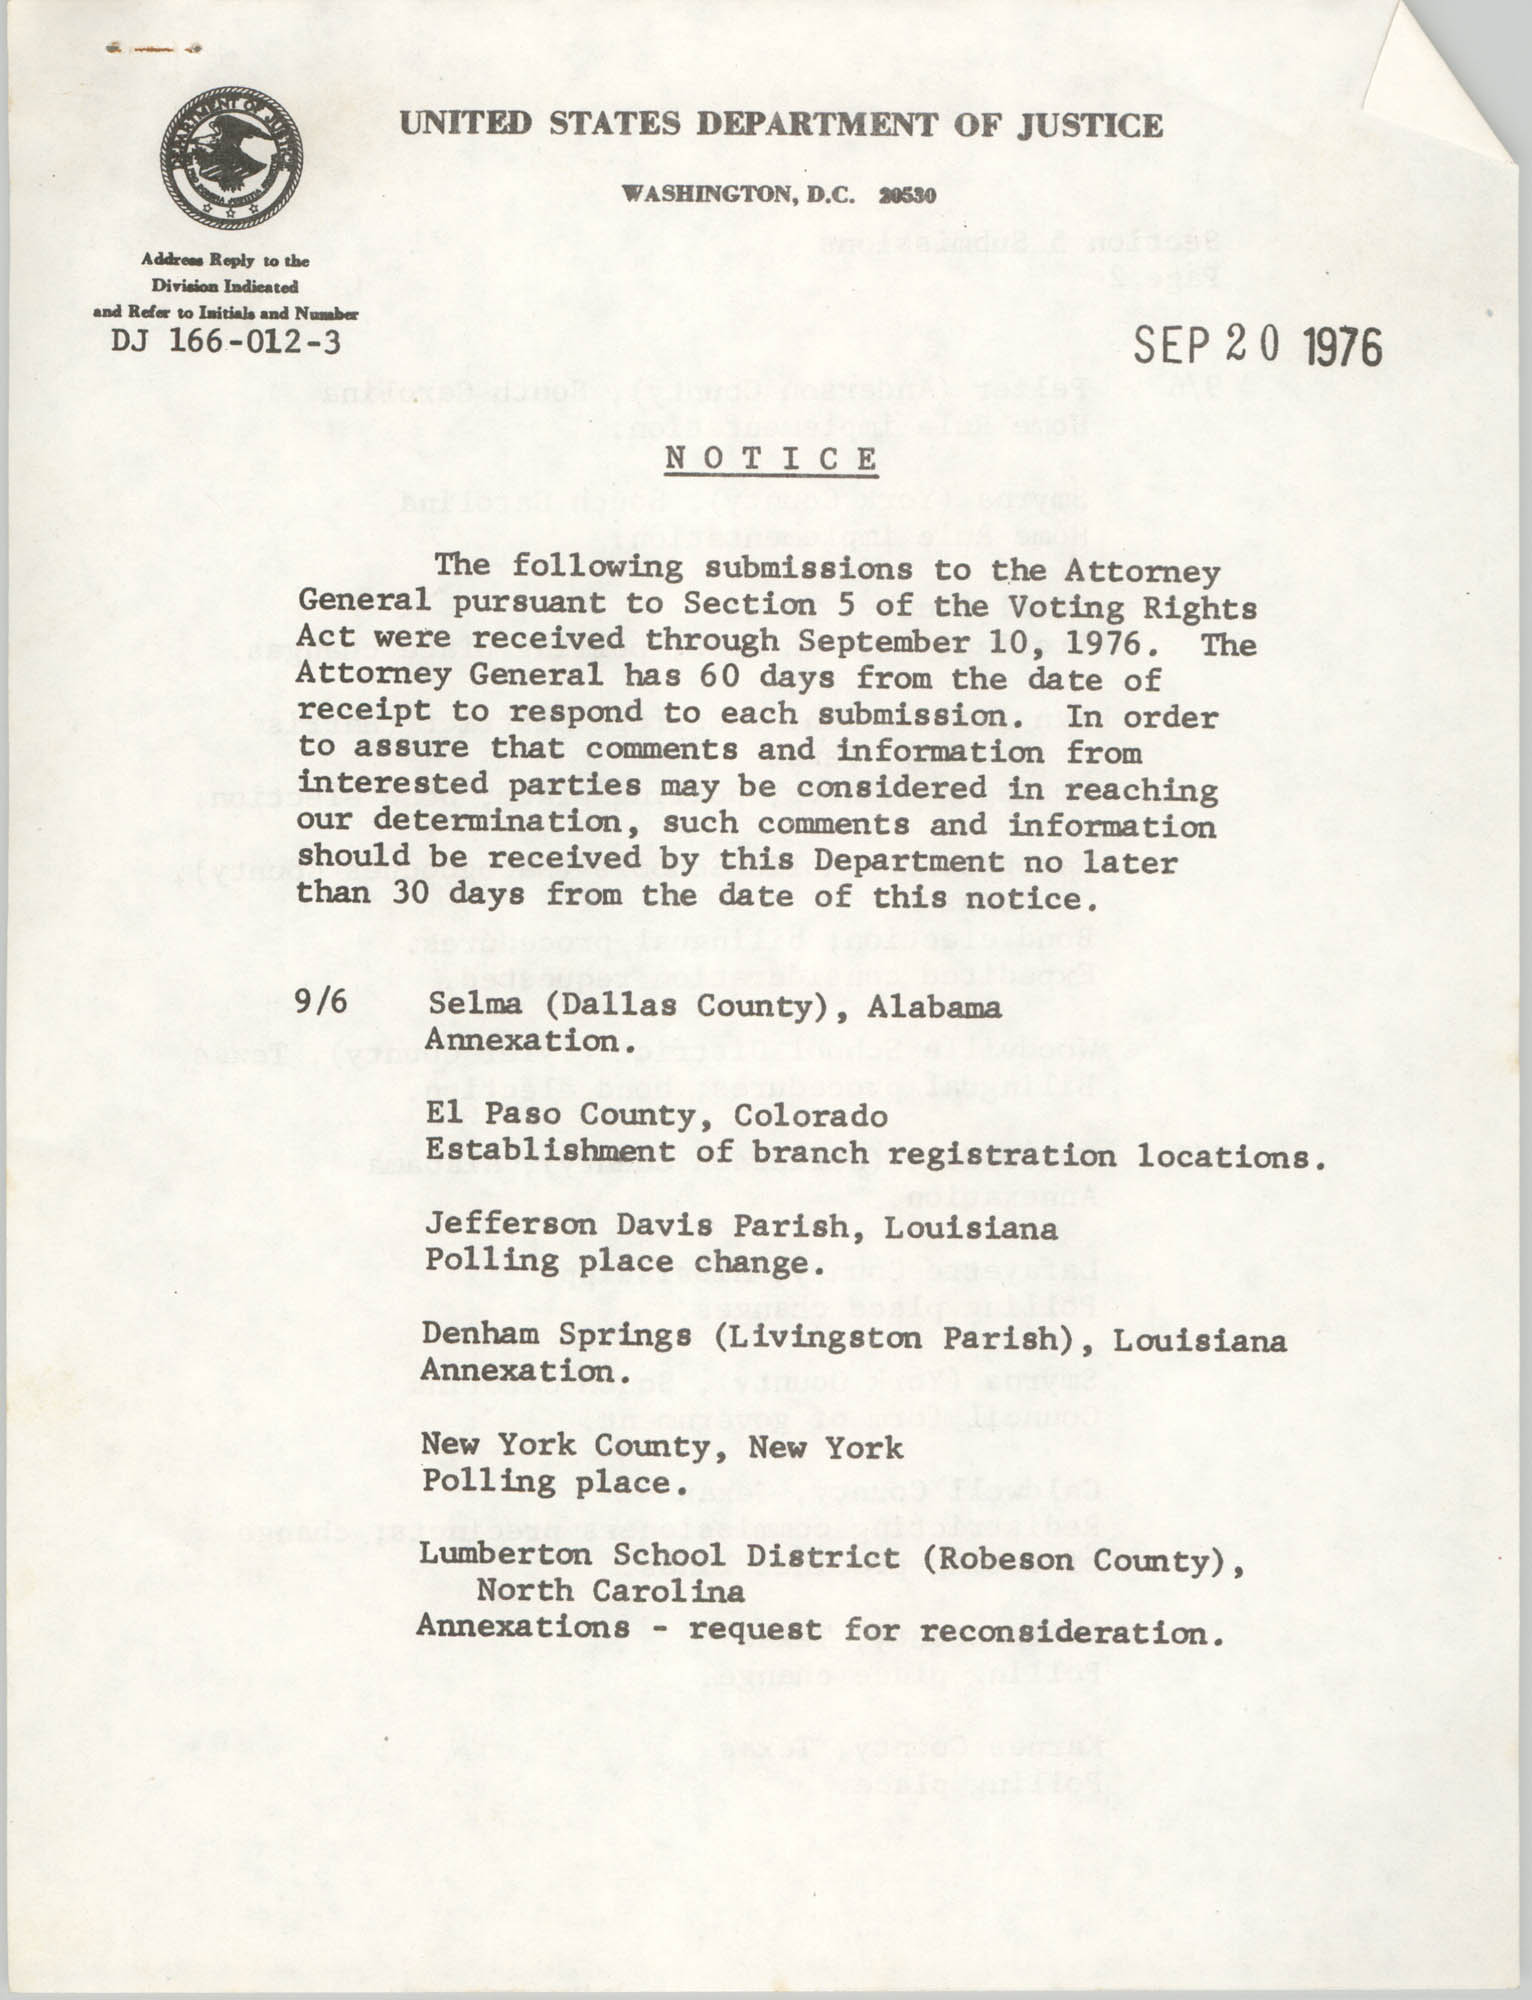 United States Department of Justice Notice, September 20, 1976